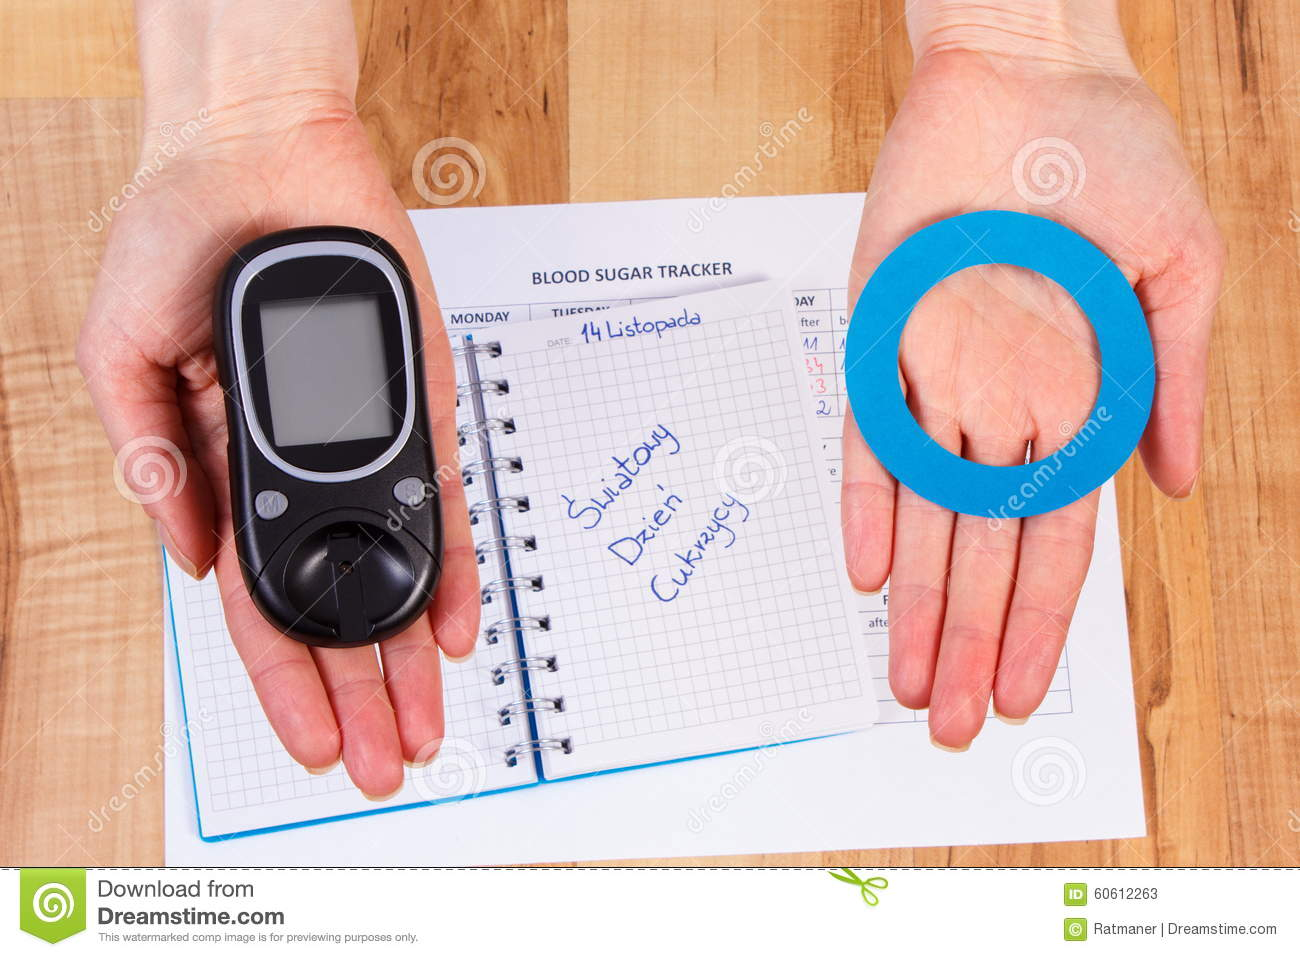 paper on diabetes paper on diabetes paper on diabetes online buy  glucometer and blue circle in hand symbol of diabetic world glucometer and blue circle in hand